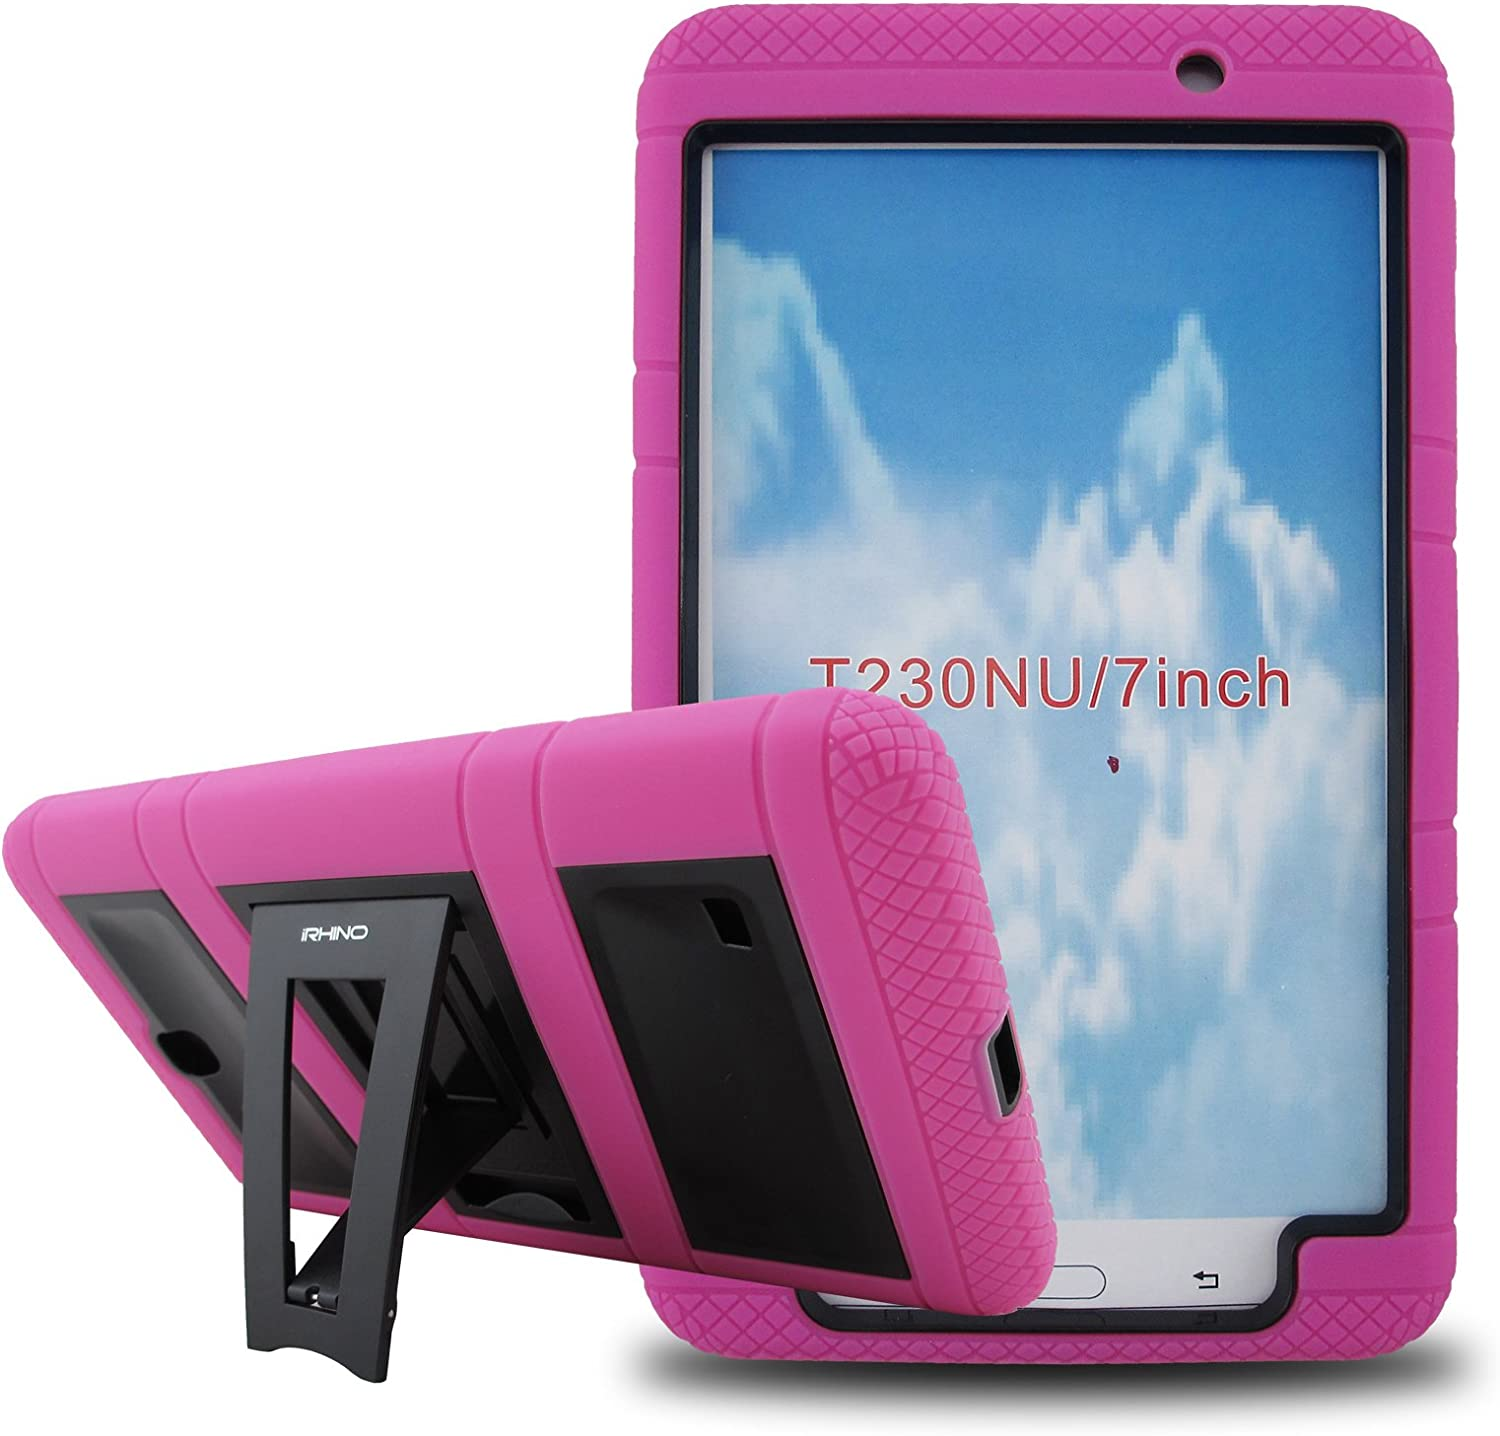 [iRhino] TM Heavy Duty rugged impact Dual Layer Hybrid Case cover with Build In Kickstand Protective Case For Samsung Tablet galaxy Tab 4 7 inch T230 (HOT PINK ON BLACK)